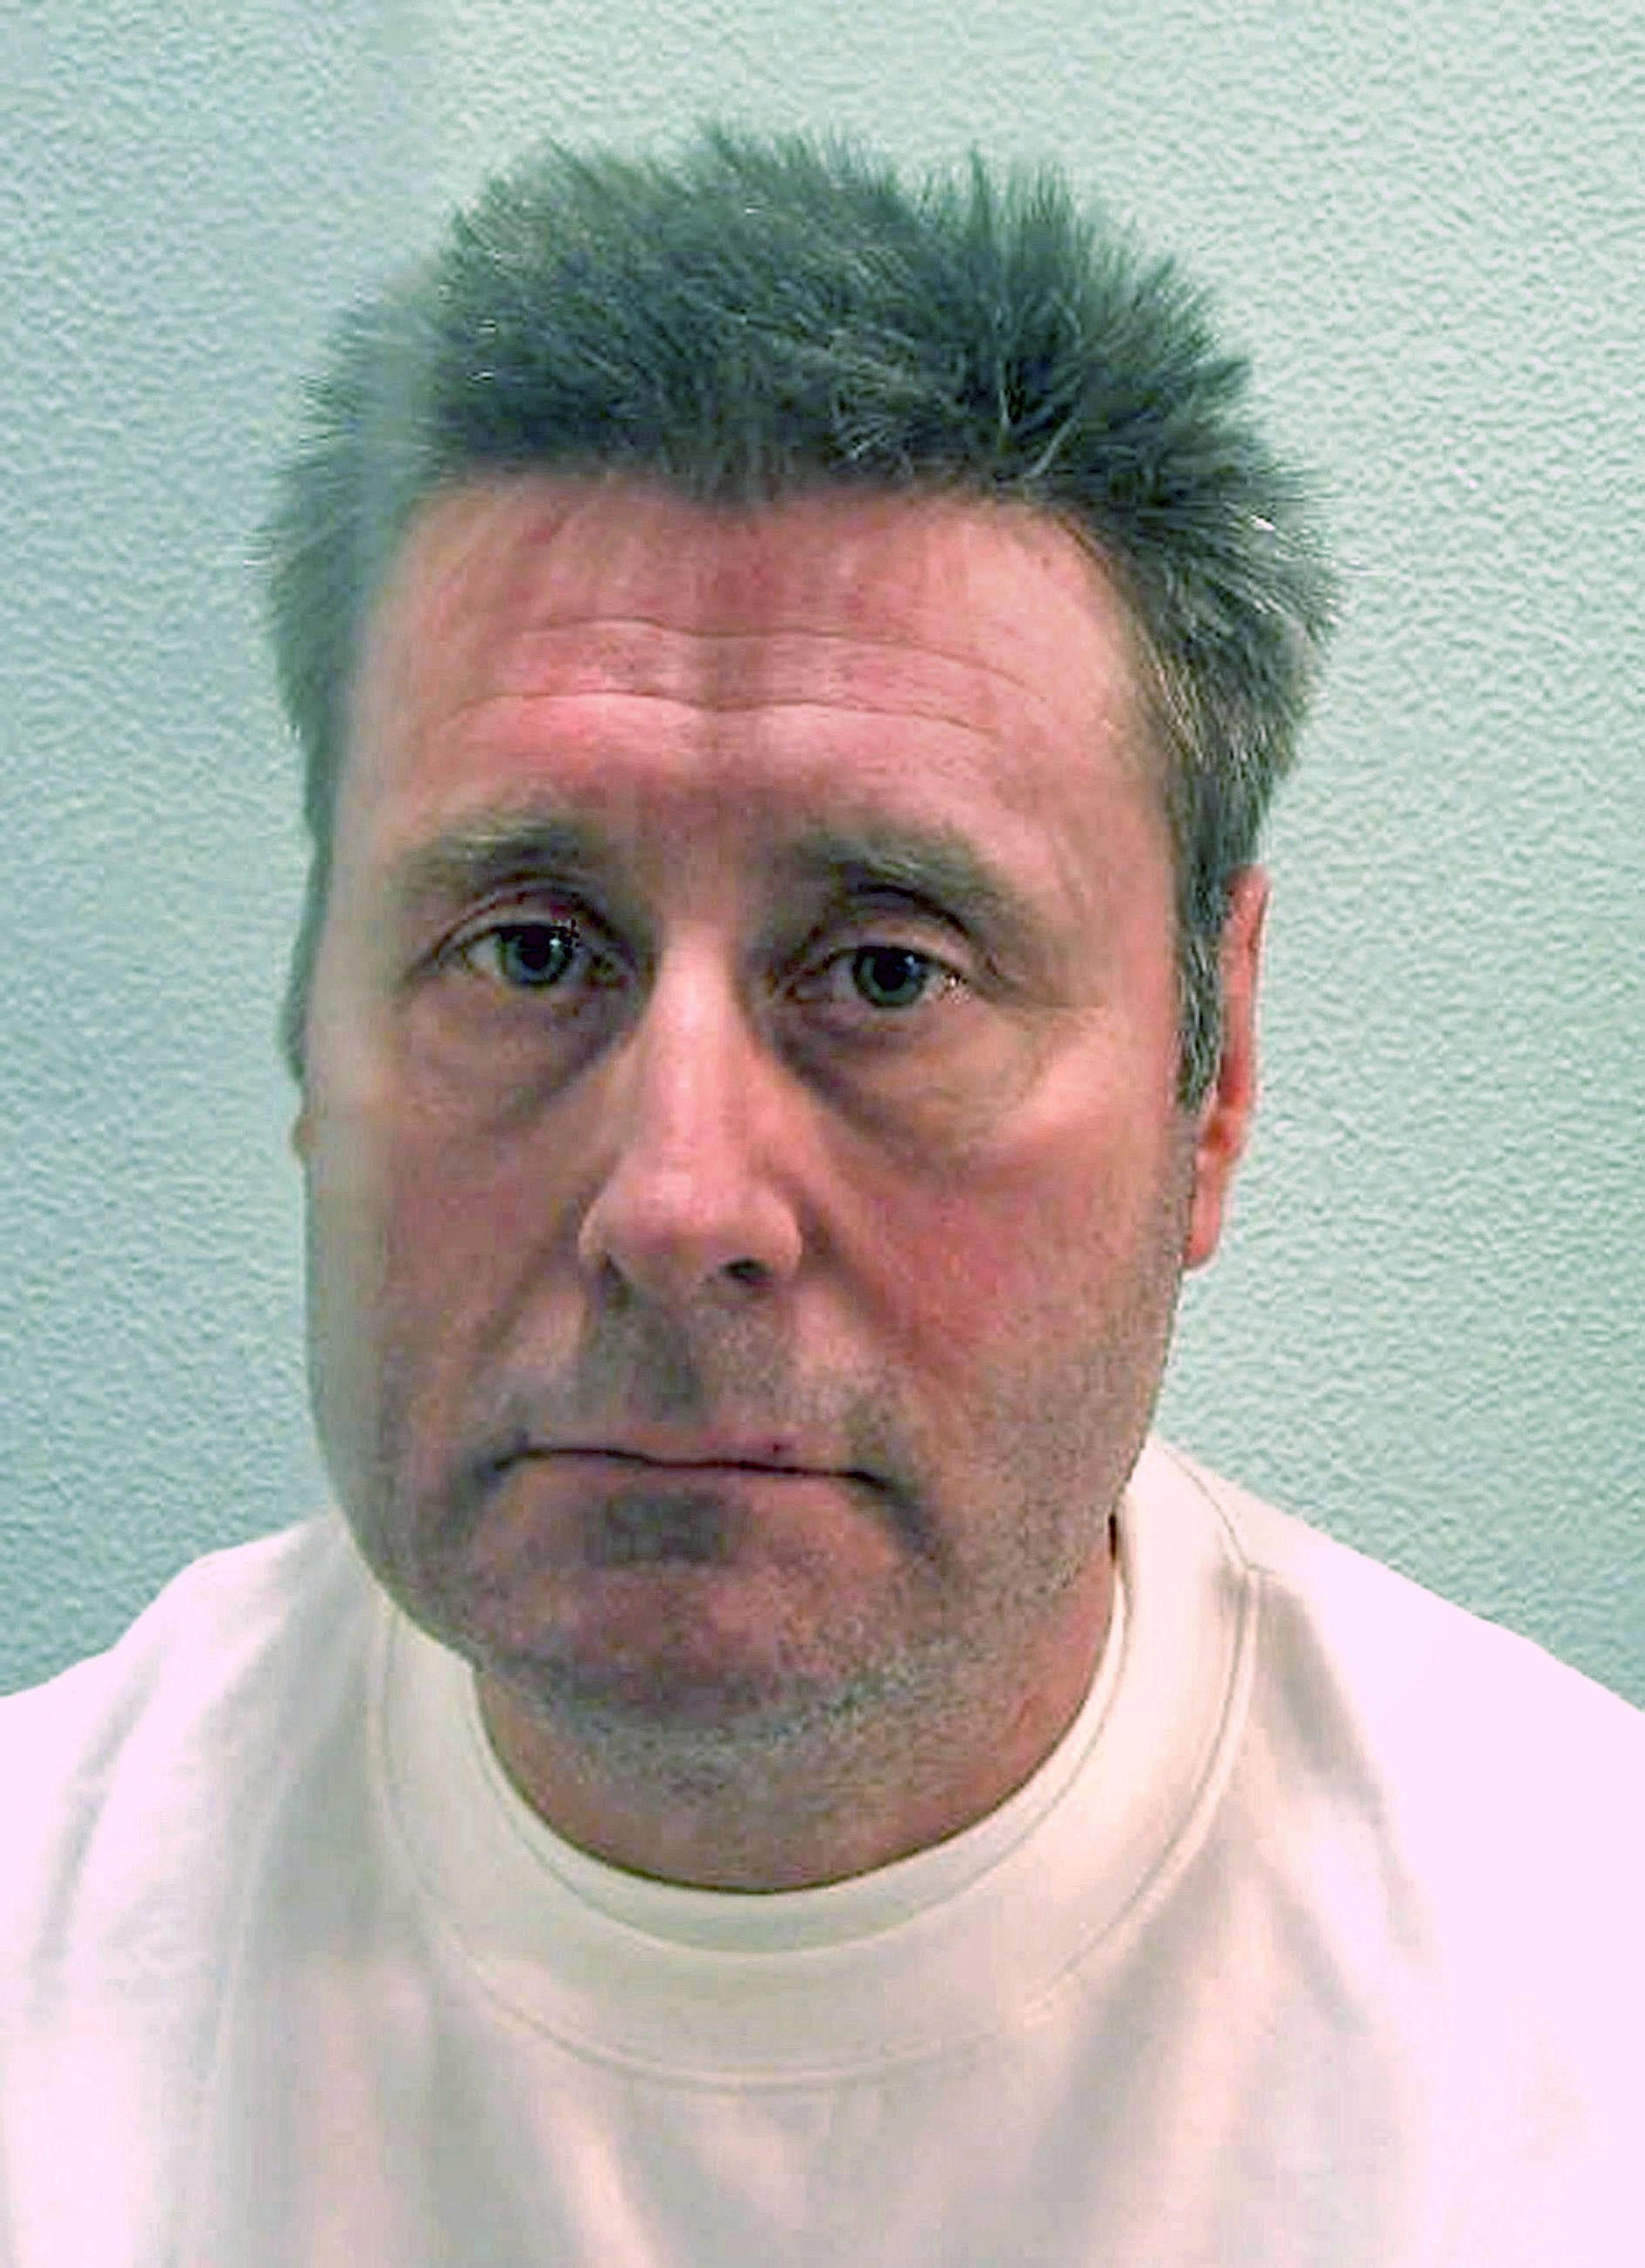 John Worboys could be out of jail in days as ministers drop plan to challenge Black Cab rapist's release in court case